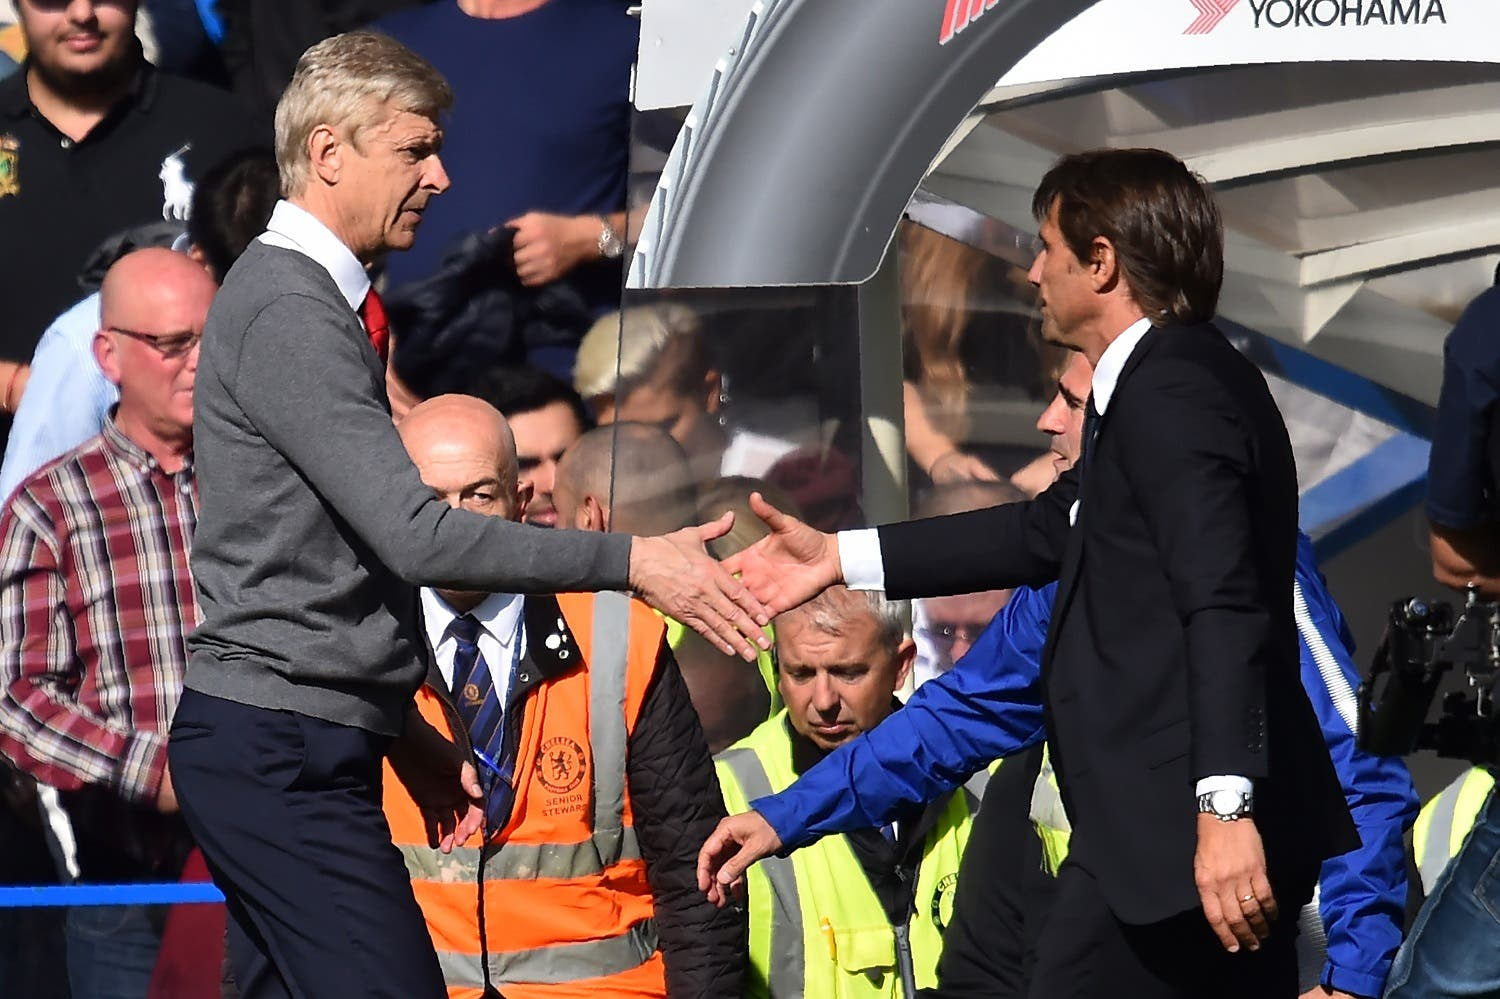 Chelsea's Italian head coach Antonio Conte (R) shakes hands with Arsenal's French manager Arsene Wenger (L) after the English Premier League football match between Chelsea and Arsenal at Stamford Bridge in London on September 17, 2017. The game ended 0-0. (AFP)